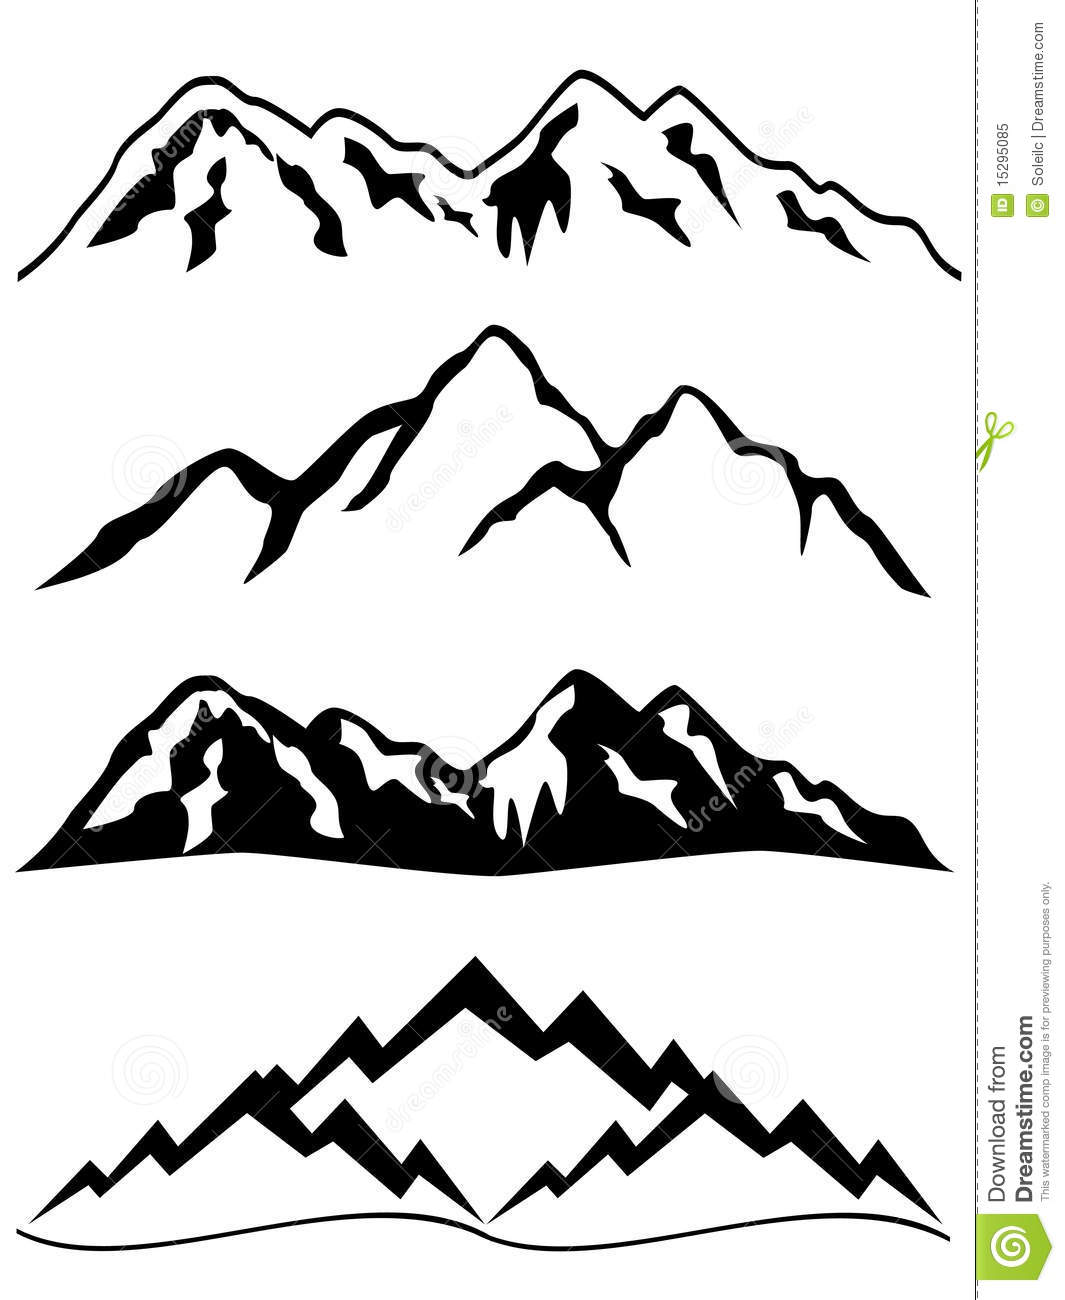 Dirt Road clipart Mountain Clipart Free Mountain (1889)